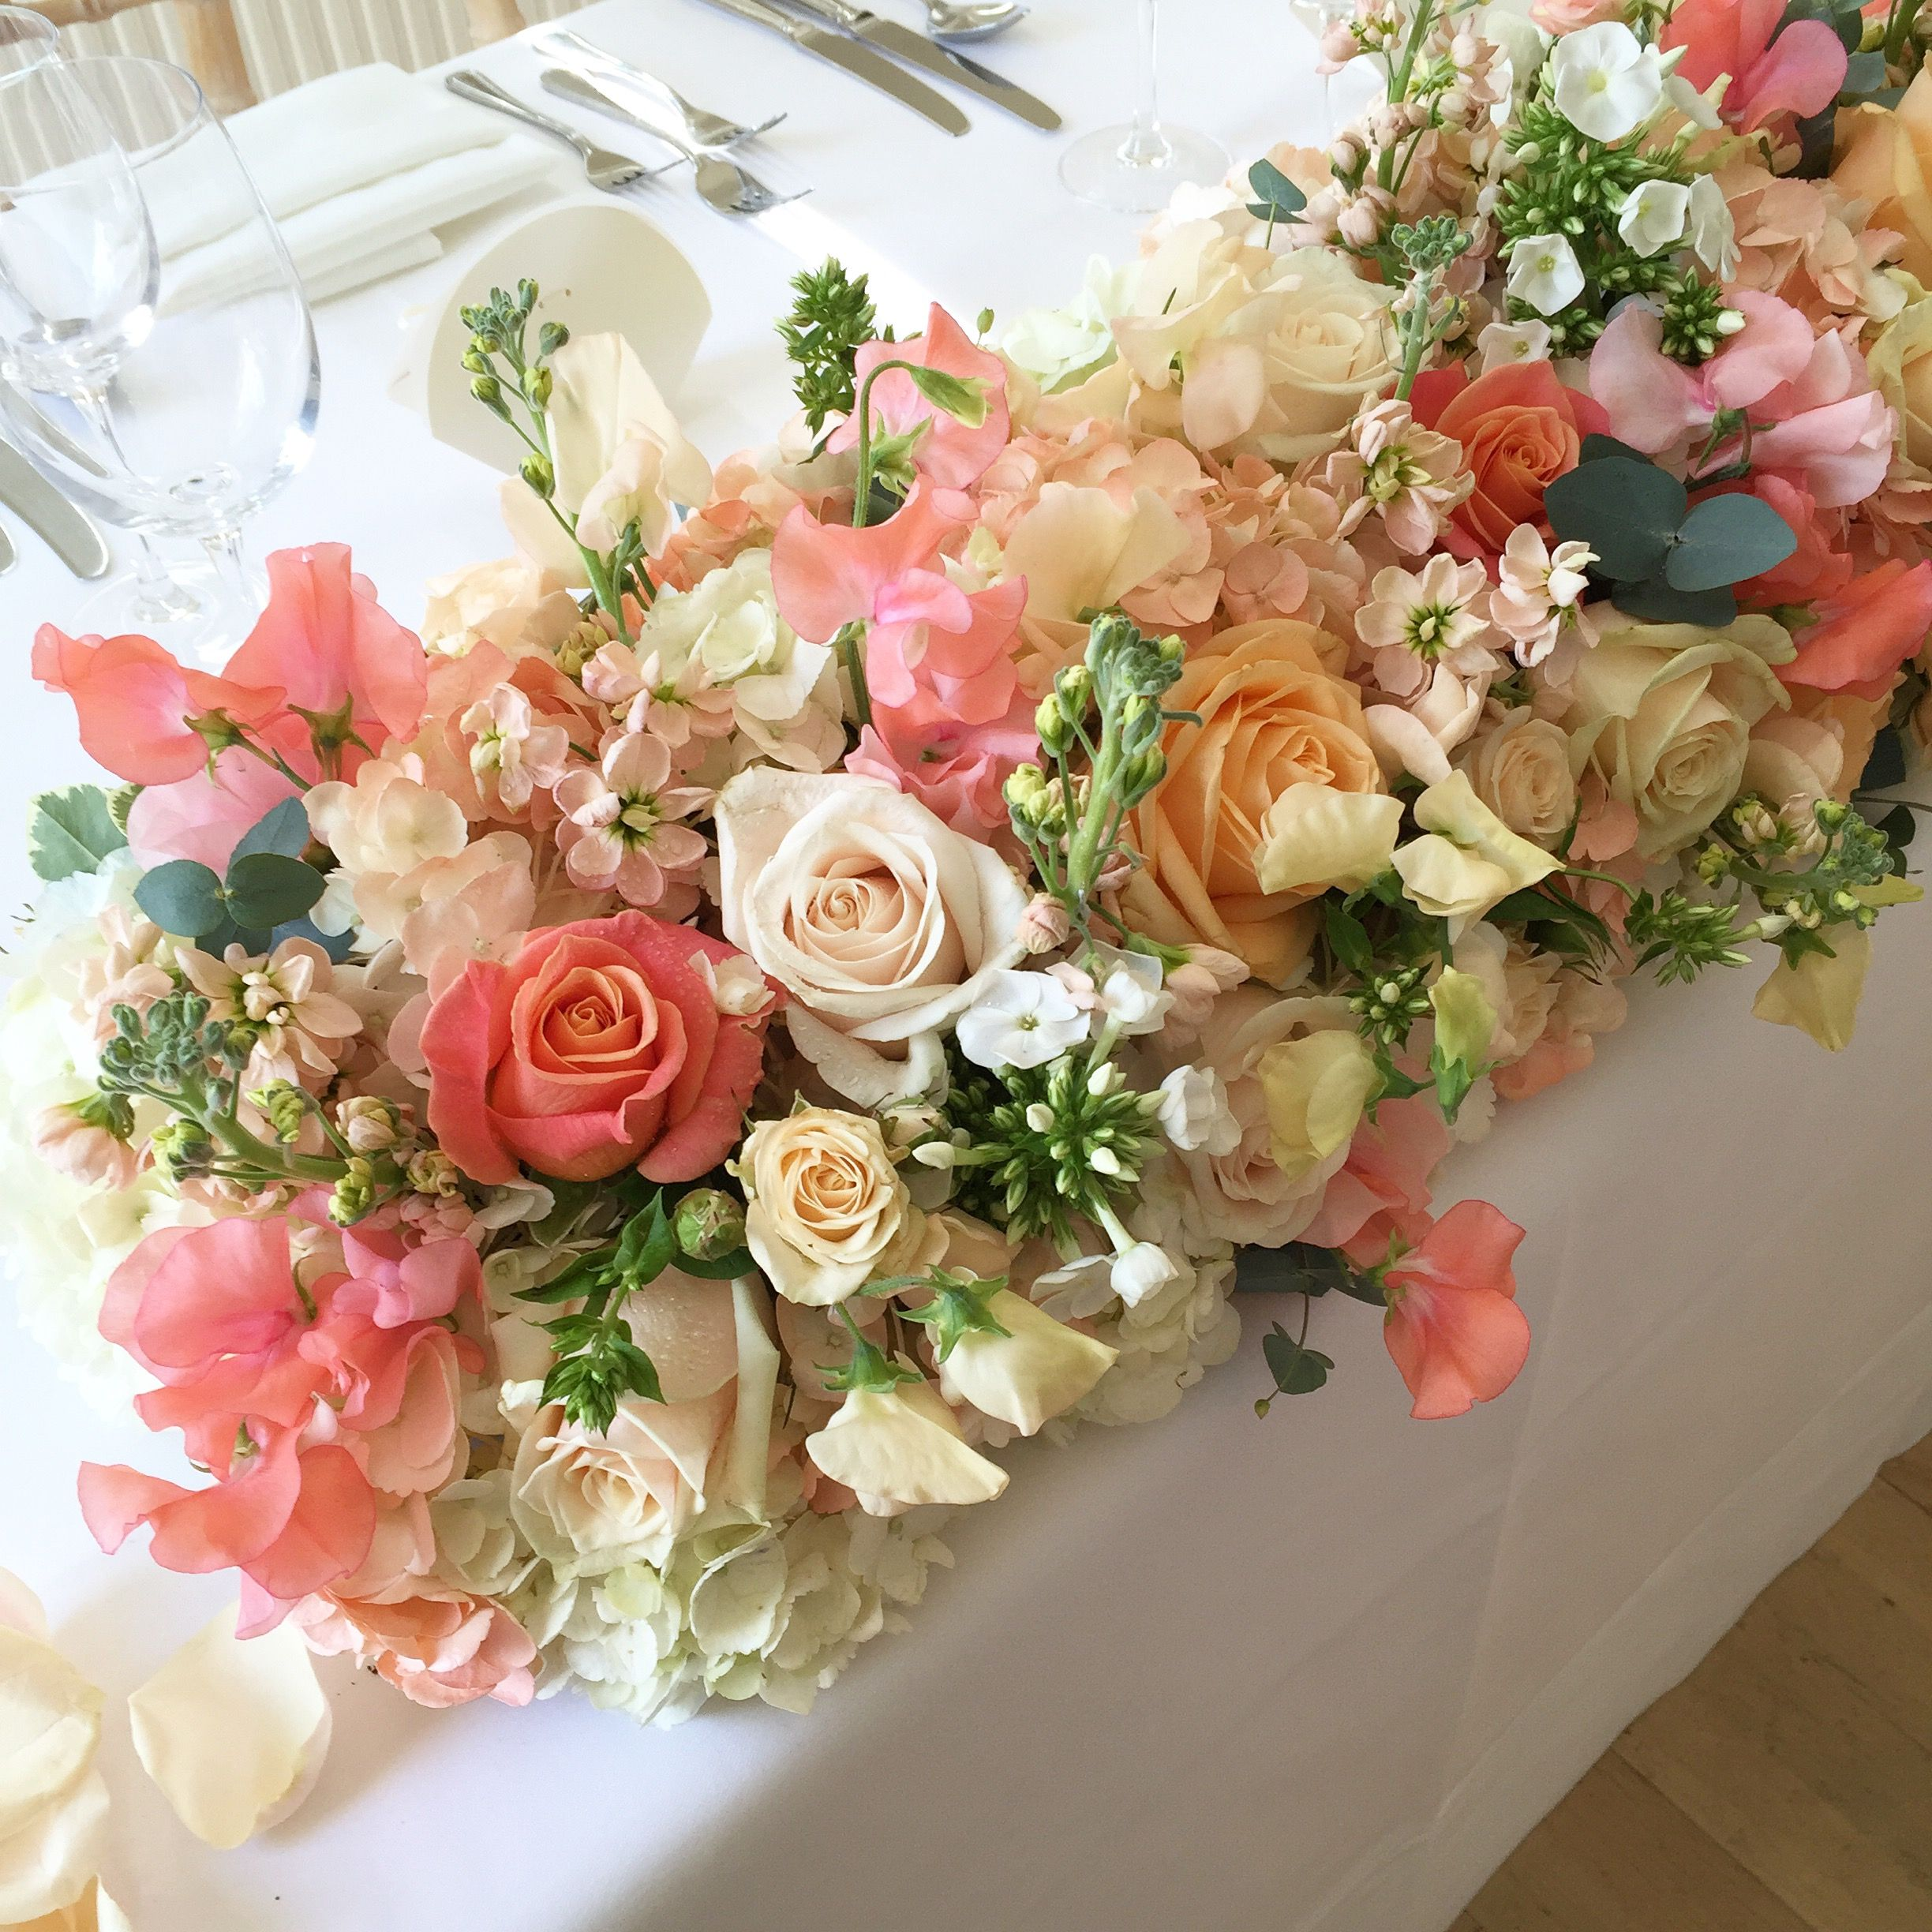 Coral And Peach Top Table Flowers At Nonsuch Mansion Stocks Miss Piggy Roses